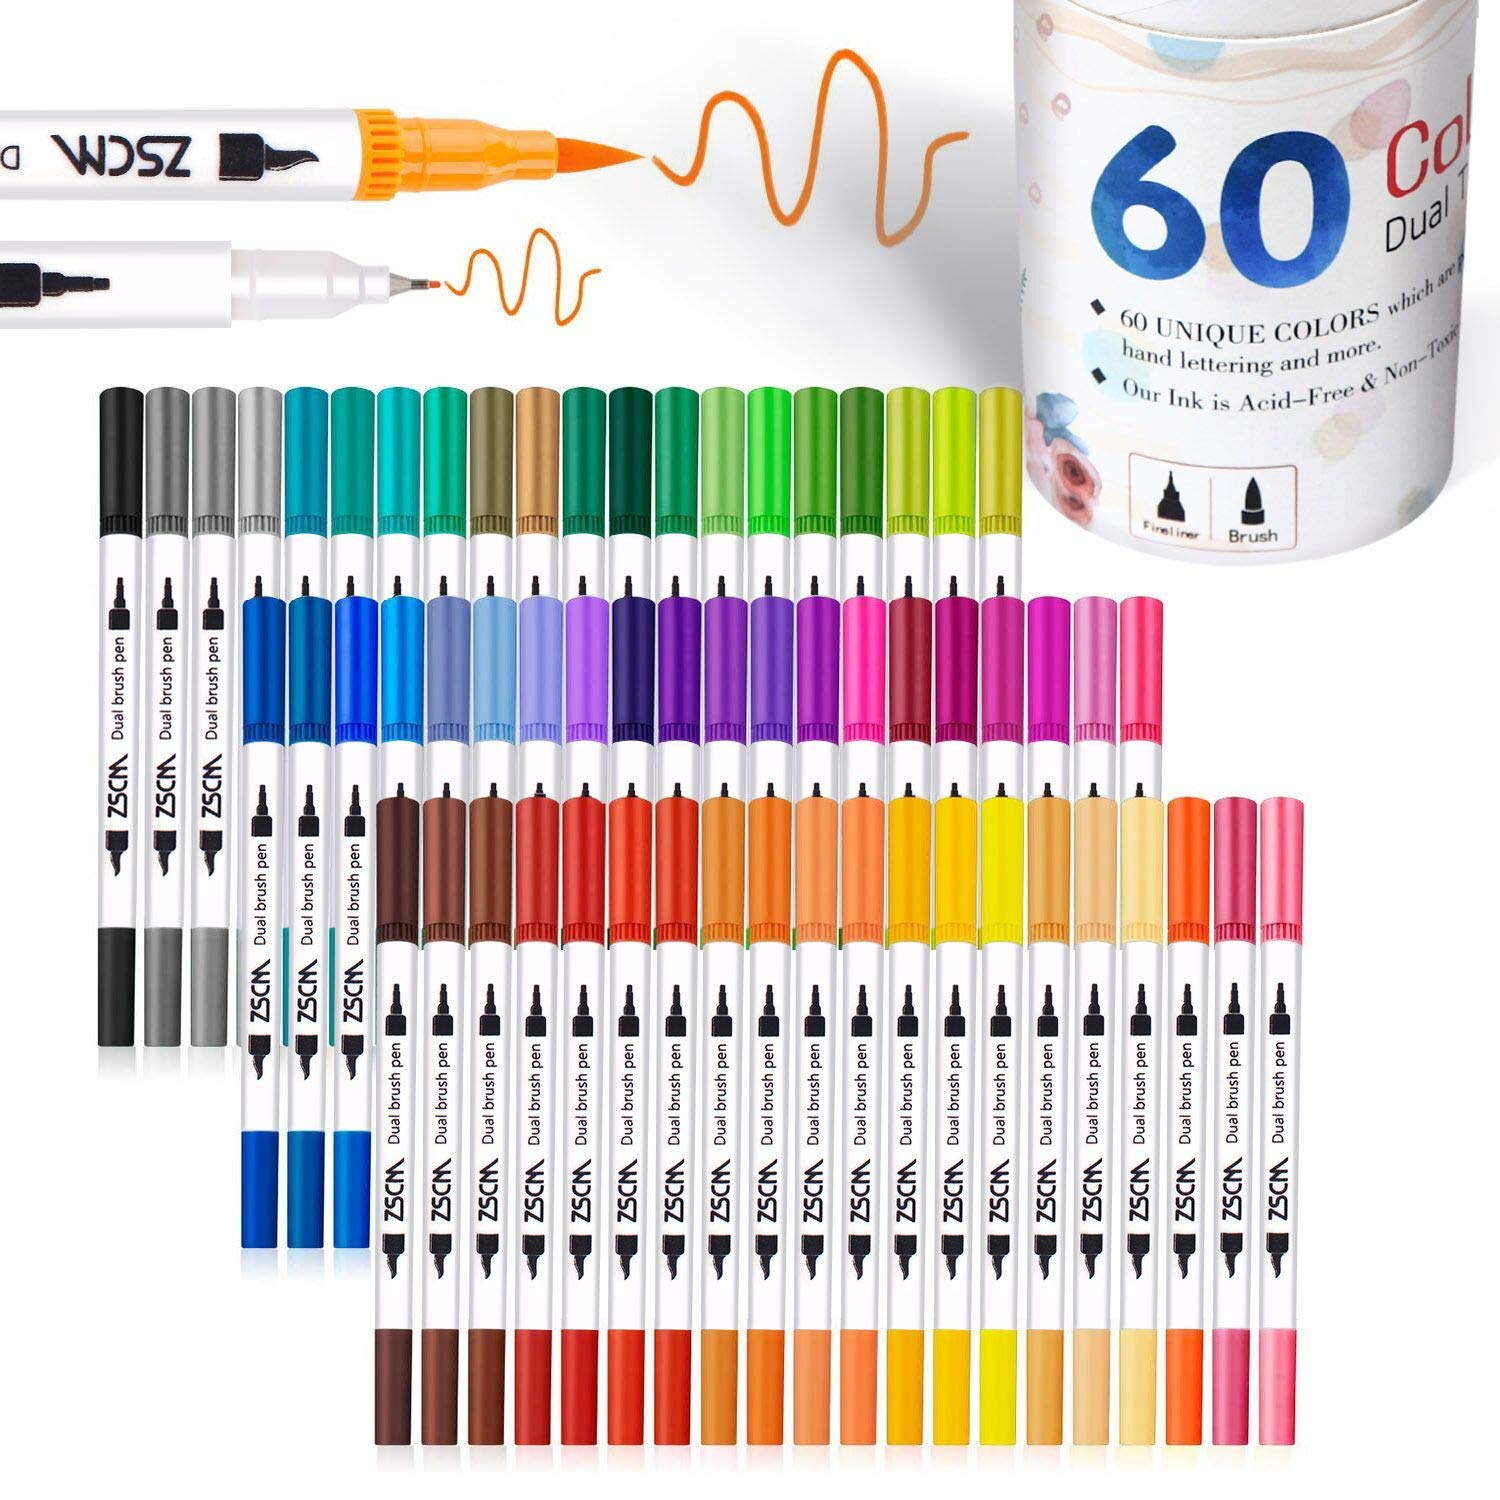 ZSCM 60 Colors Dual Tip Brush Pens Art Markers Set, Fine and Brush Tip Colored Dual Pen for Kid Adult Coloring Book Drawing Bullet Journal Planner Calendar Art Projects by ZSCM QUALITY DECIDES THE FUTURE